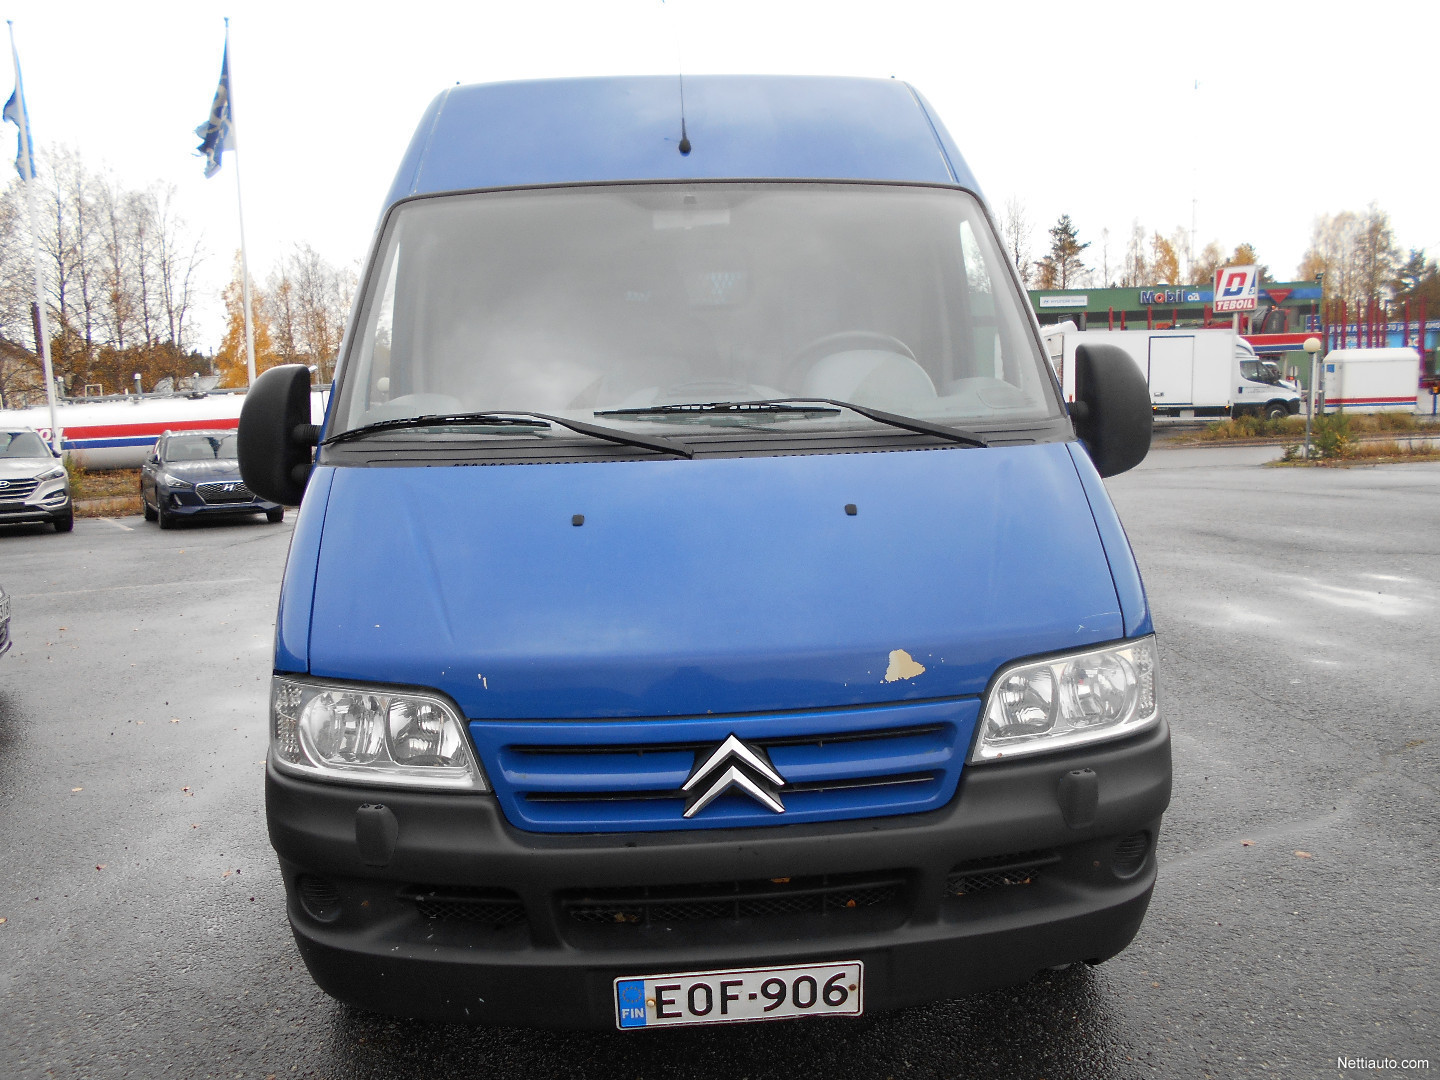 citroen jumper jumper fourgon 2 2hdi zcrmnc 370 long high 2006 used vehicle nettiauto. Black Bedroom Furniture Sets. Home Design Ideas